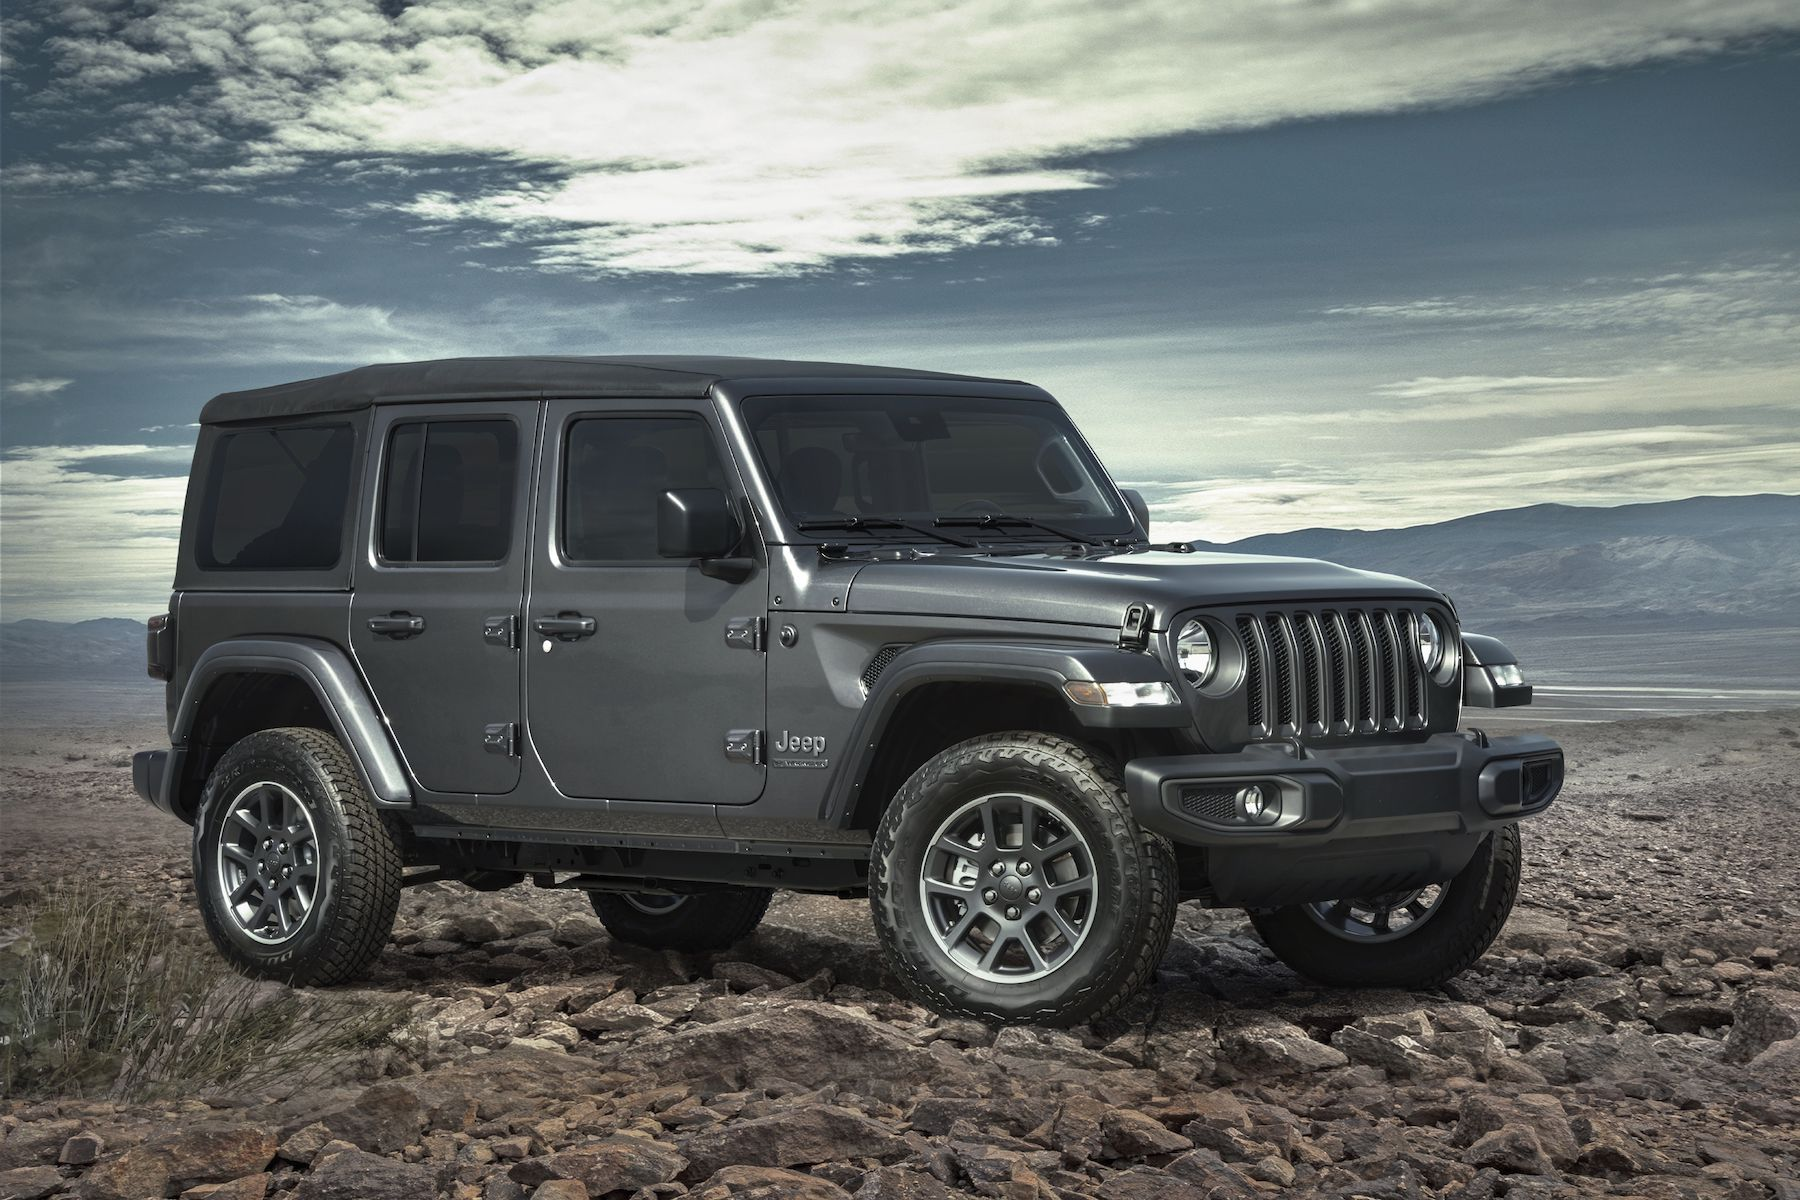 2021 Jeep Wrangler 80th Anniversary Edition.